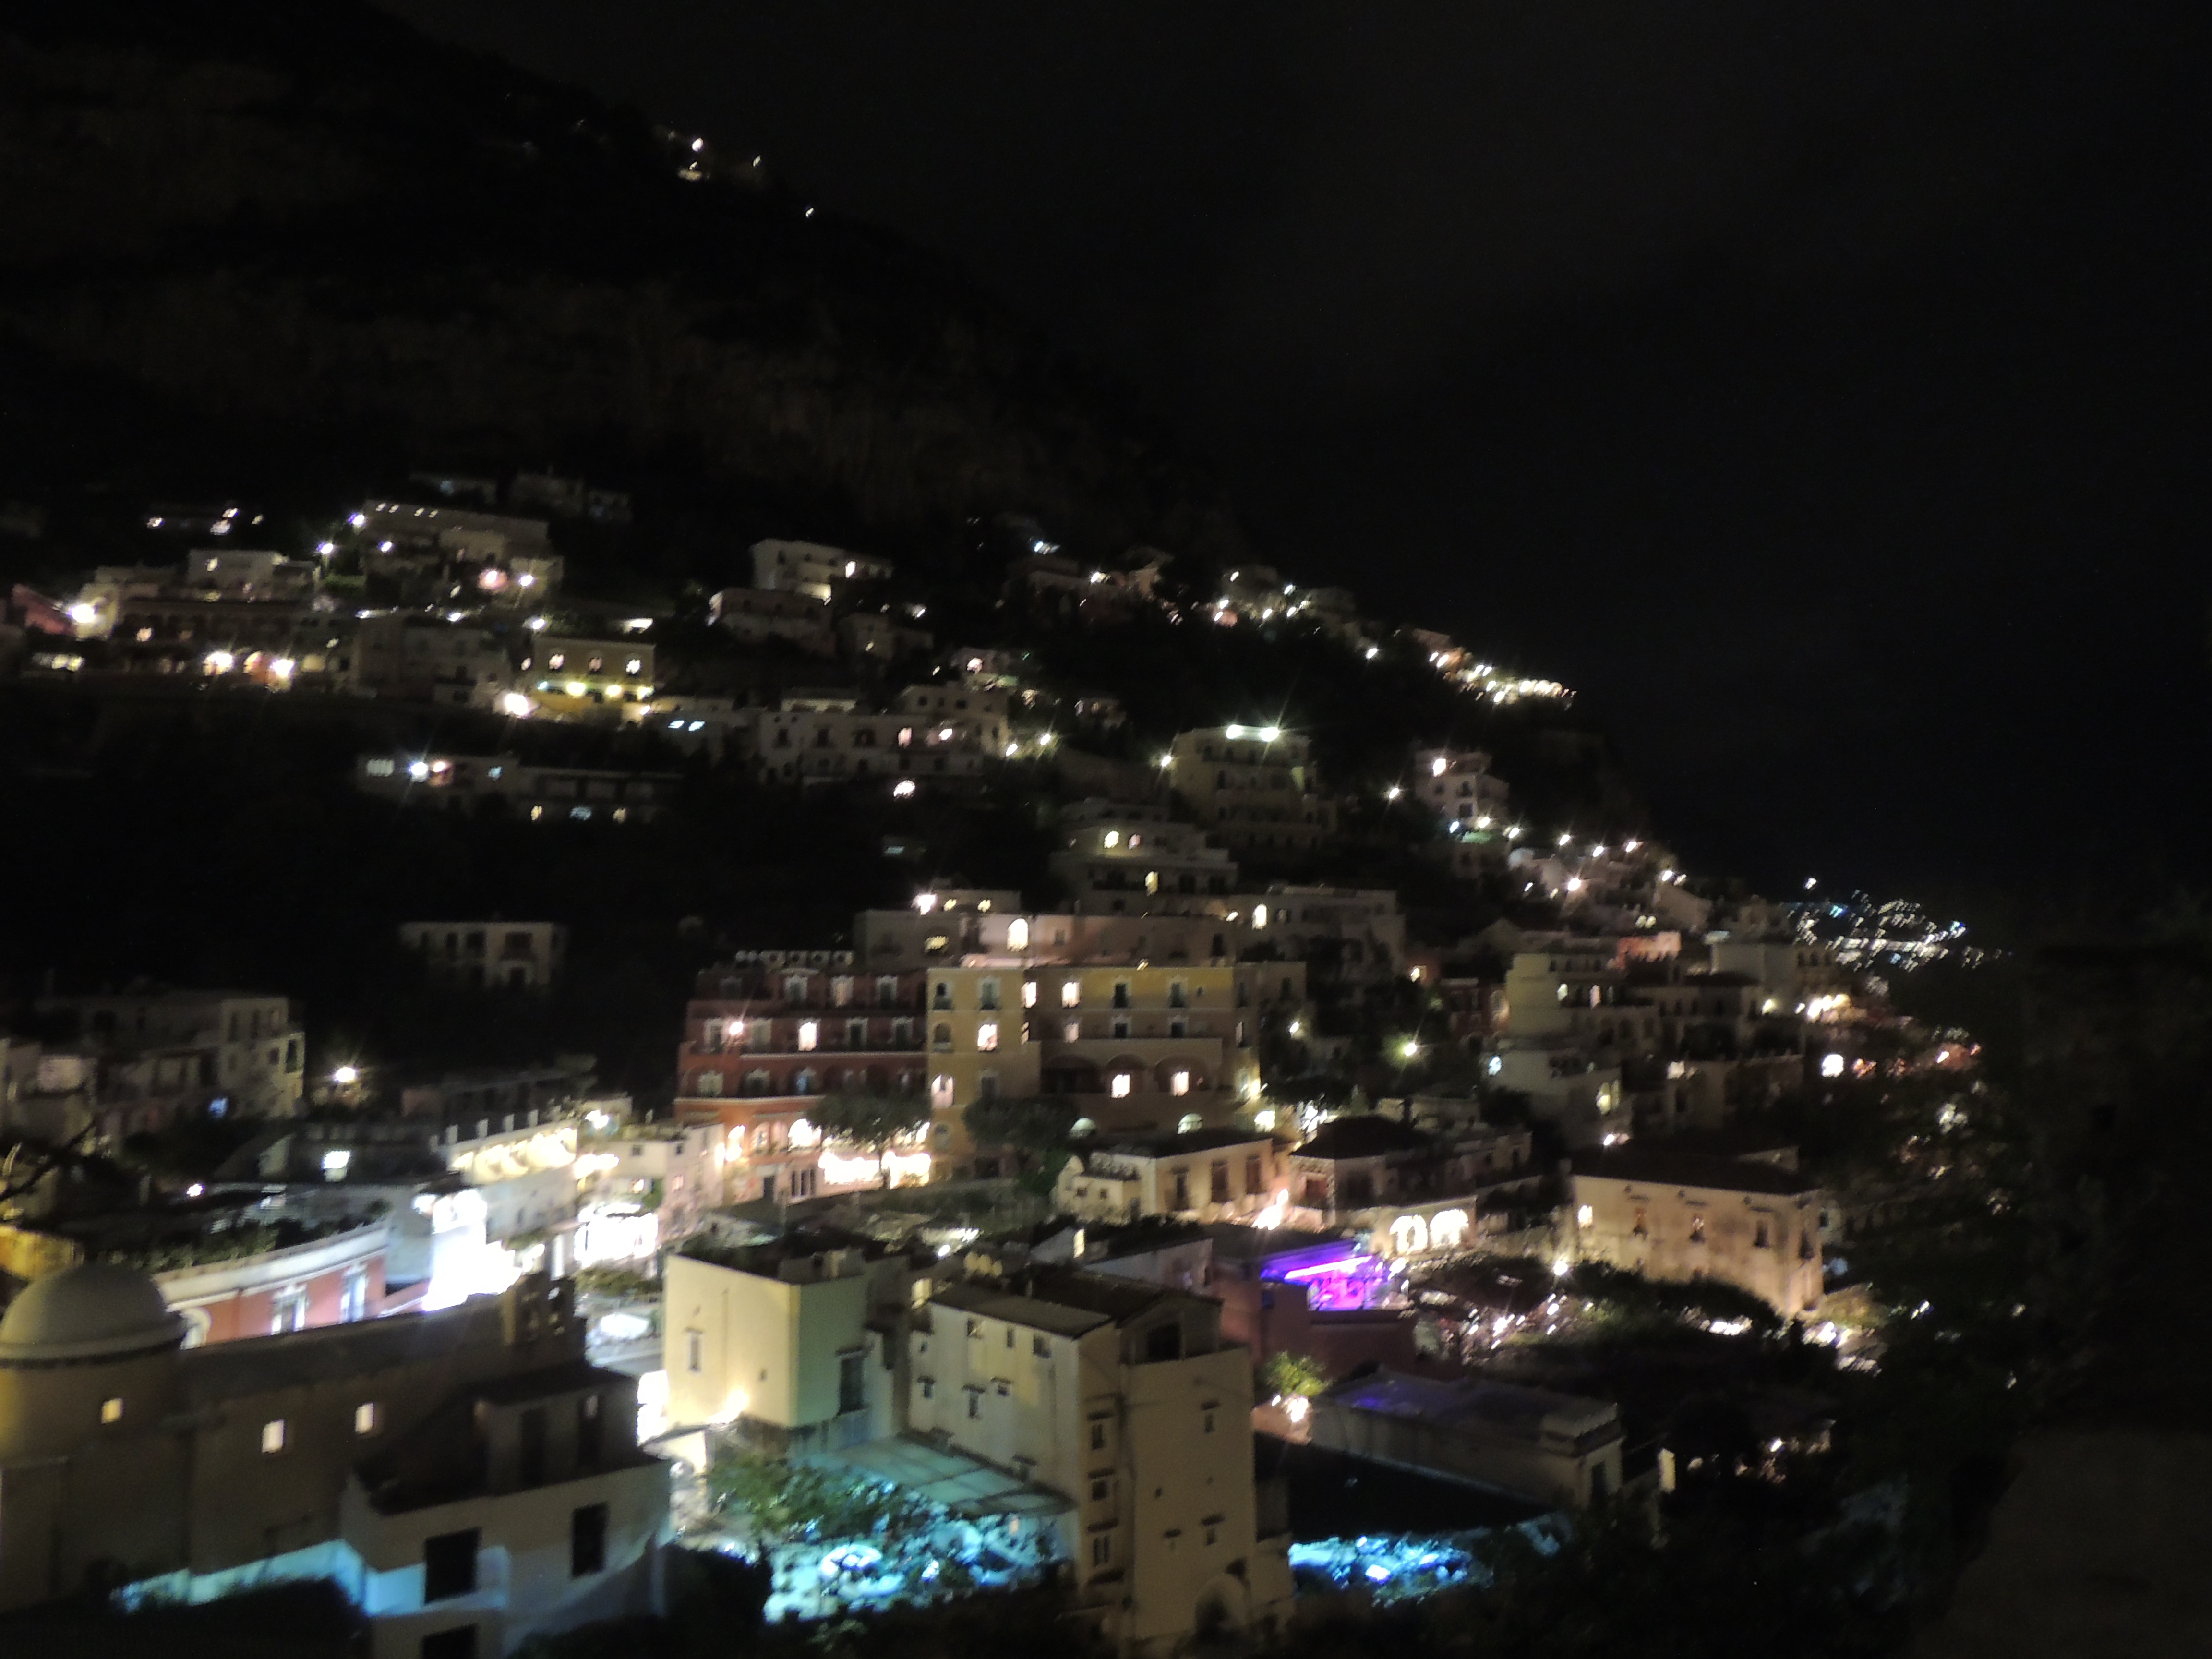 Positano in the night